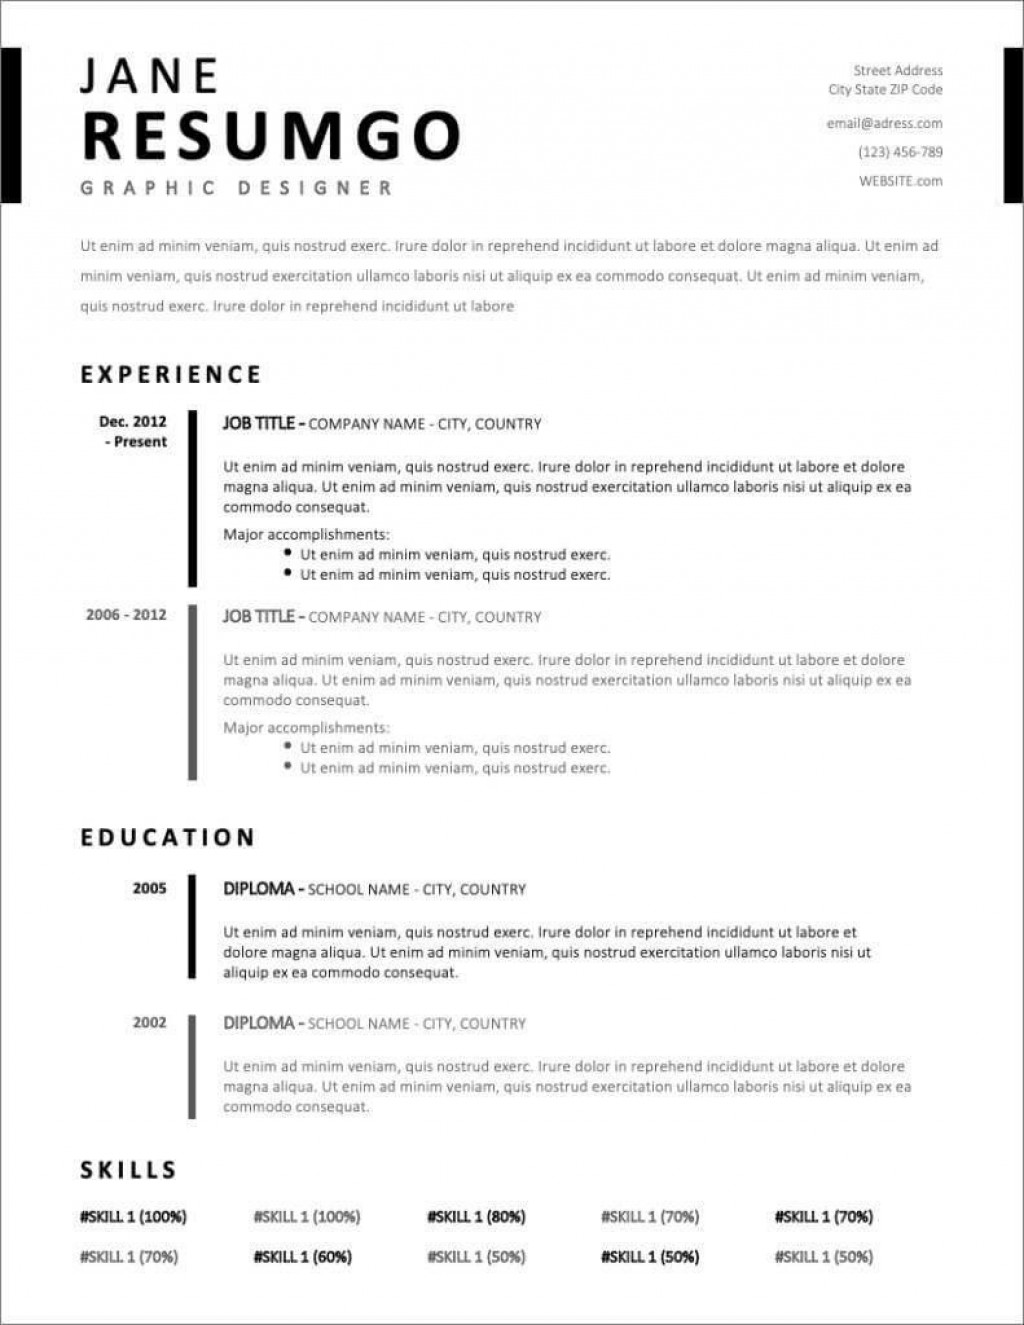 004 Rare Free Downloadable Resume Template Highest Clarity  Templates For Page Download Format Fresher PdfLarge